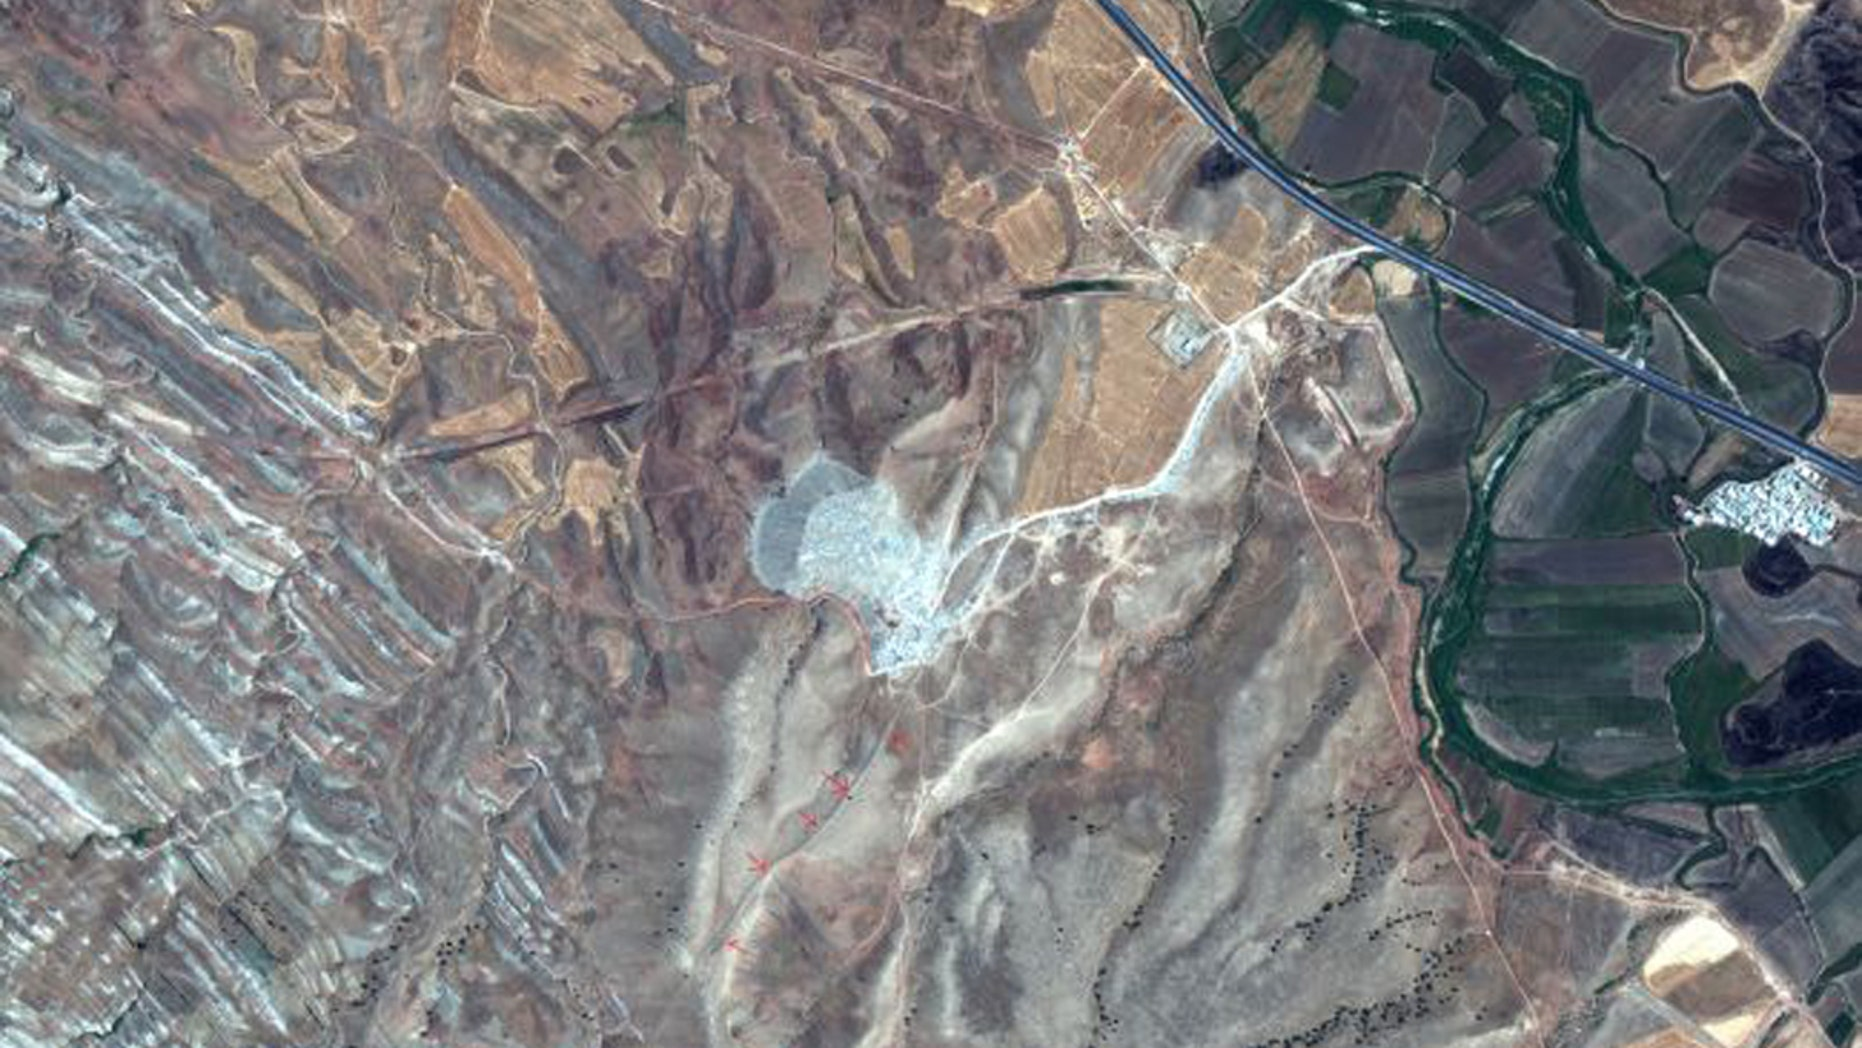 This satellite image was taken on July 31, 2019 by the WorldView-2 satellite. The red arrows show a surviving section of the Gawri Wall. (Credit: 2019 Maxar Technologies)